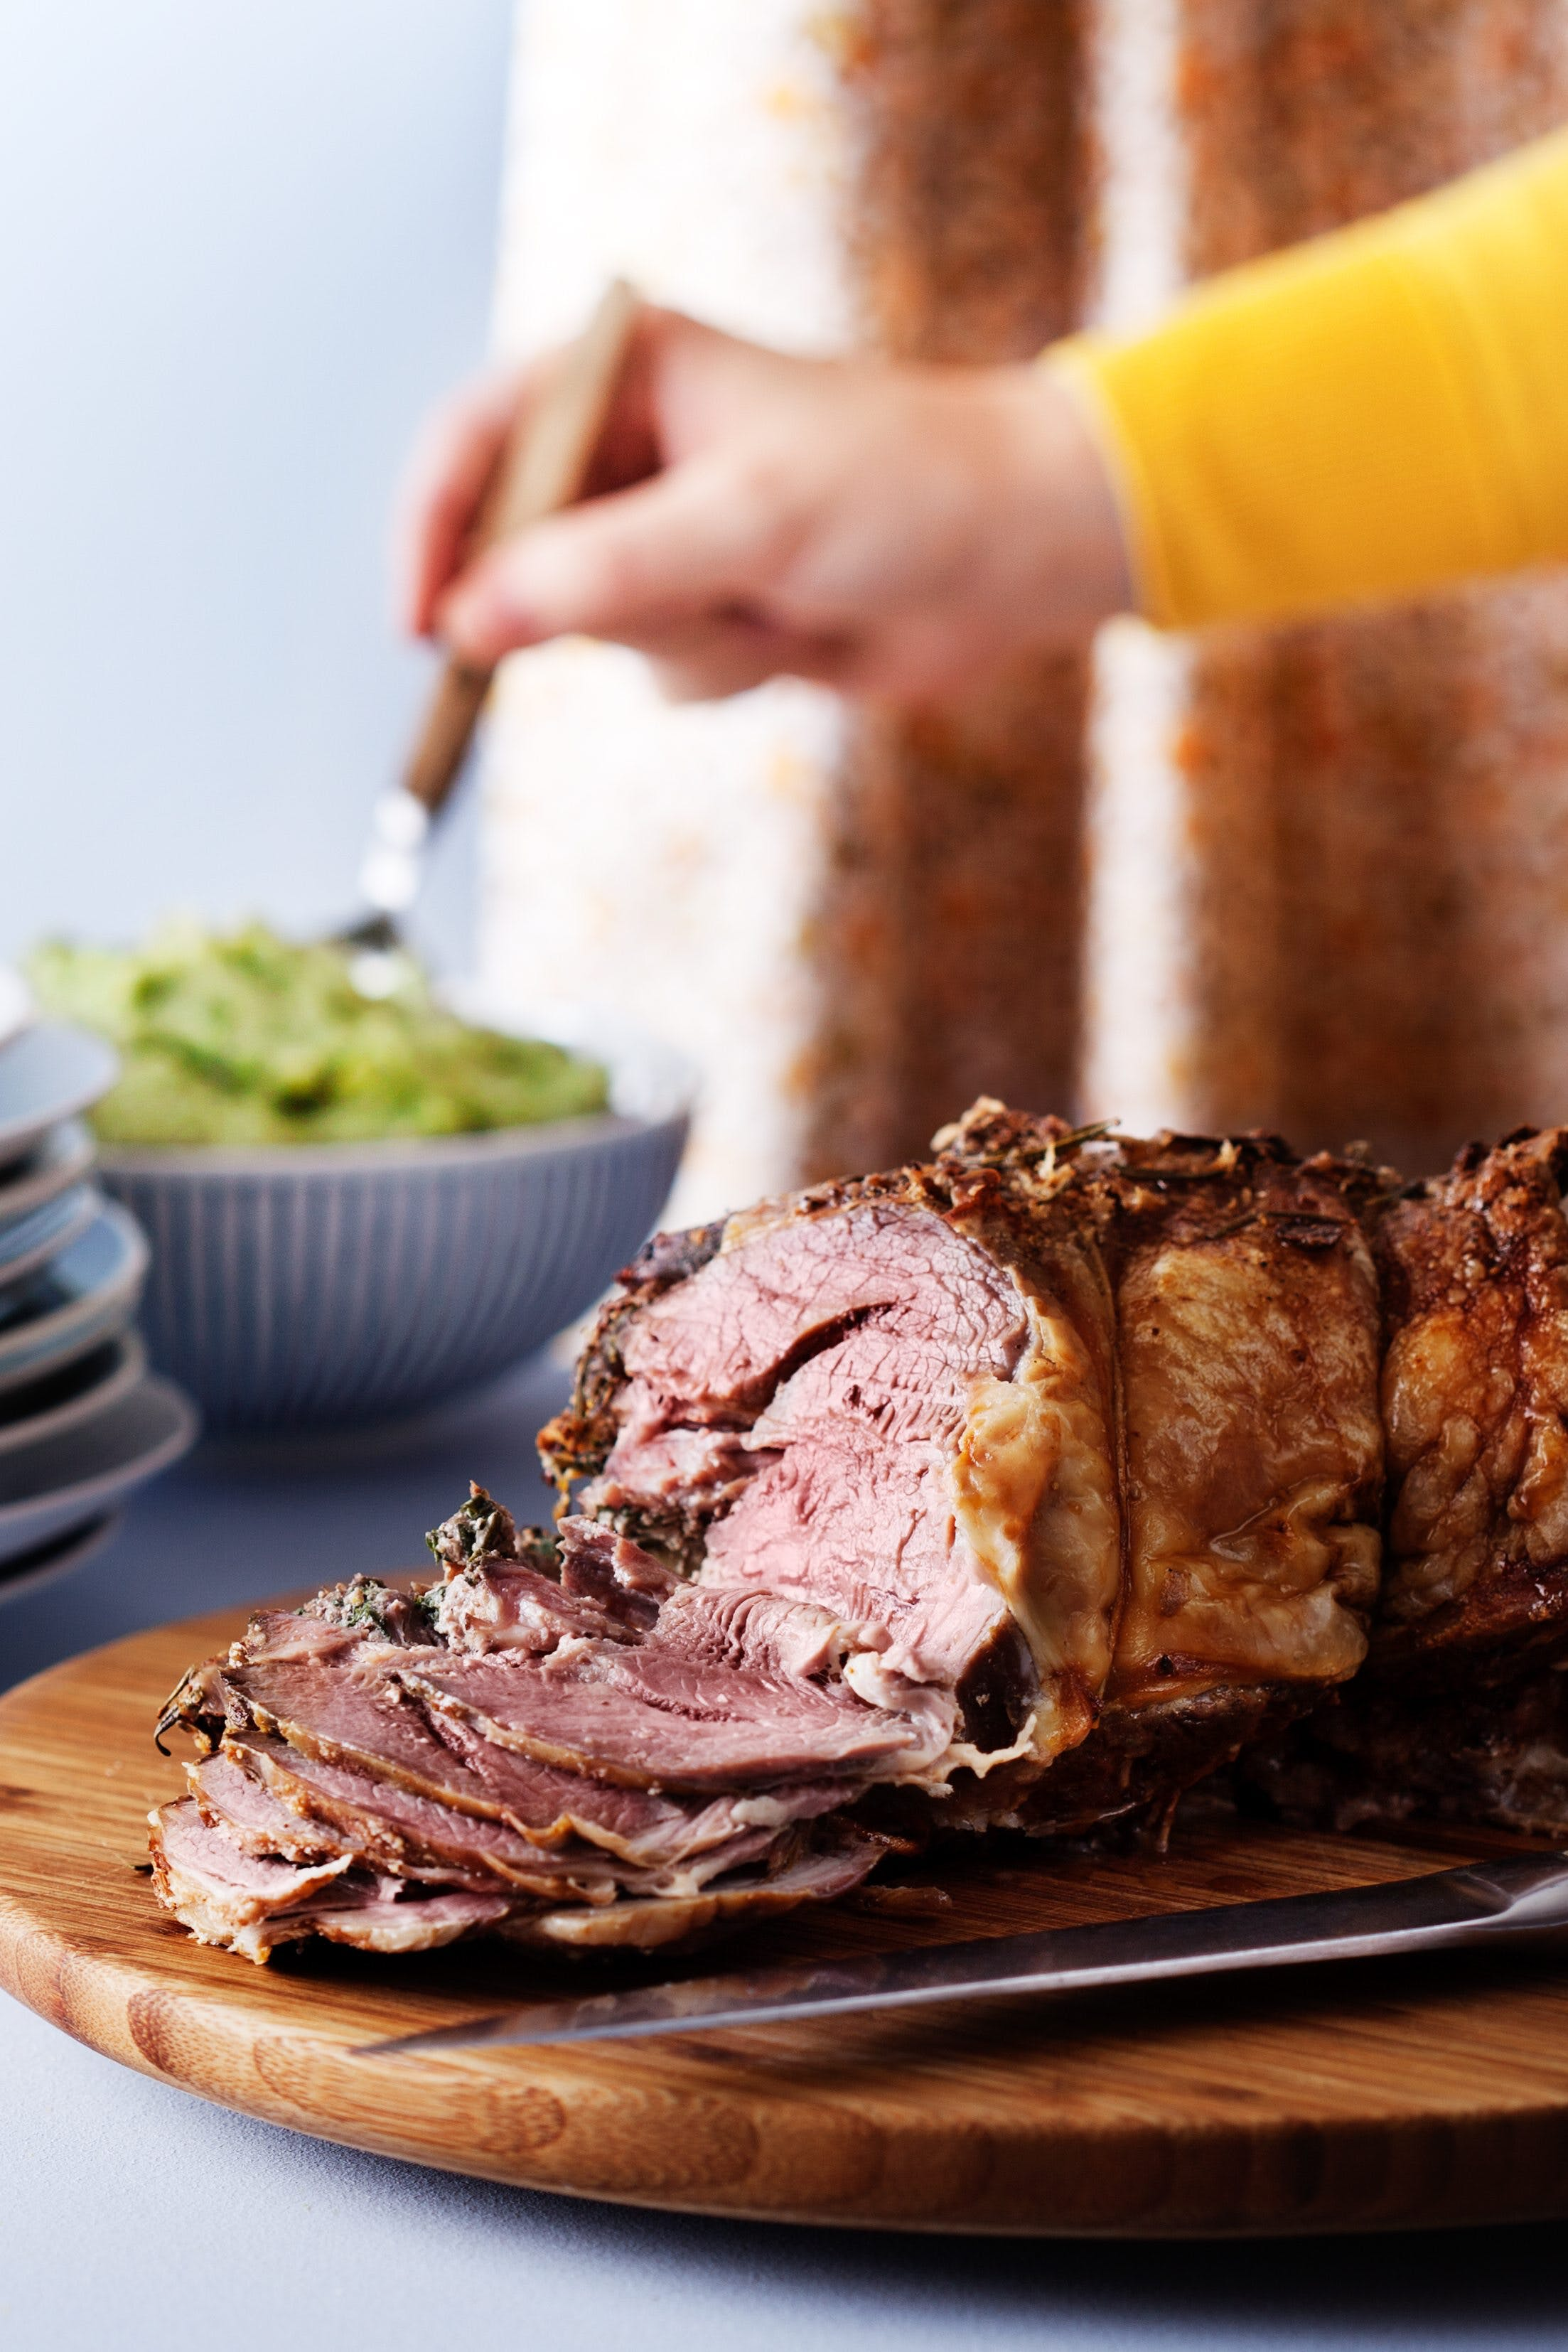 Low-carb lamb roast with broccoli purée